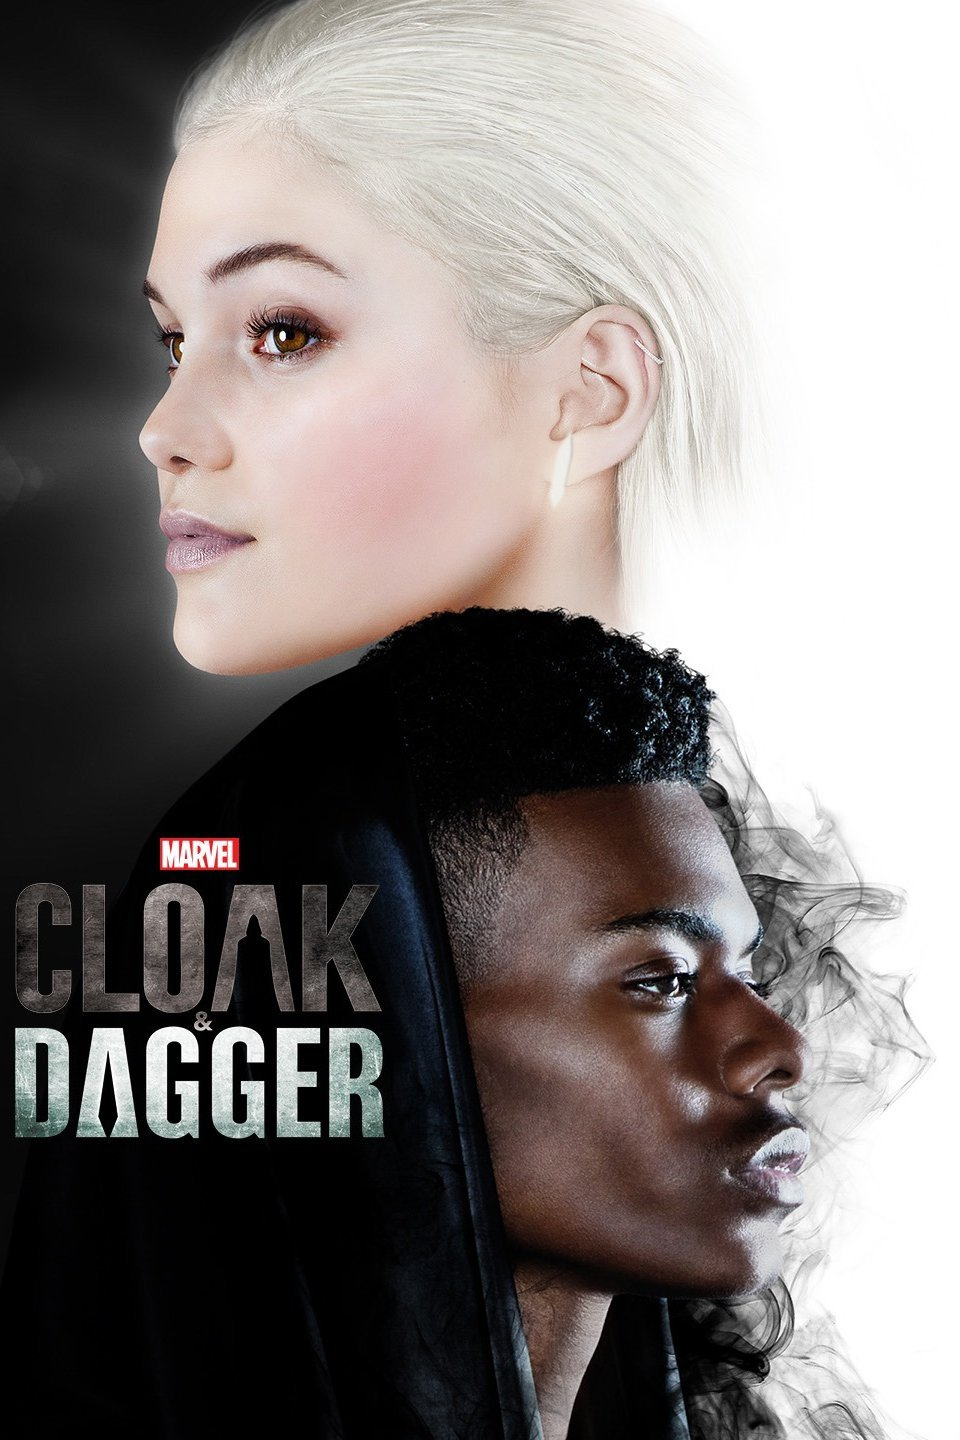 Cloak & Dagger Season 1 Episode 8 Download HDTV 480p 720p